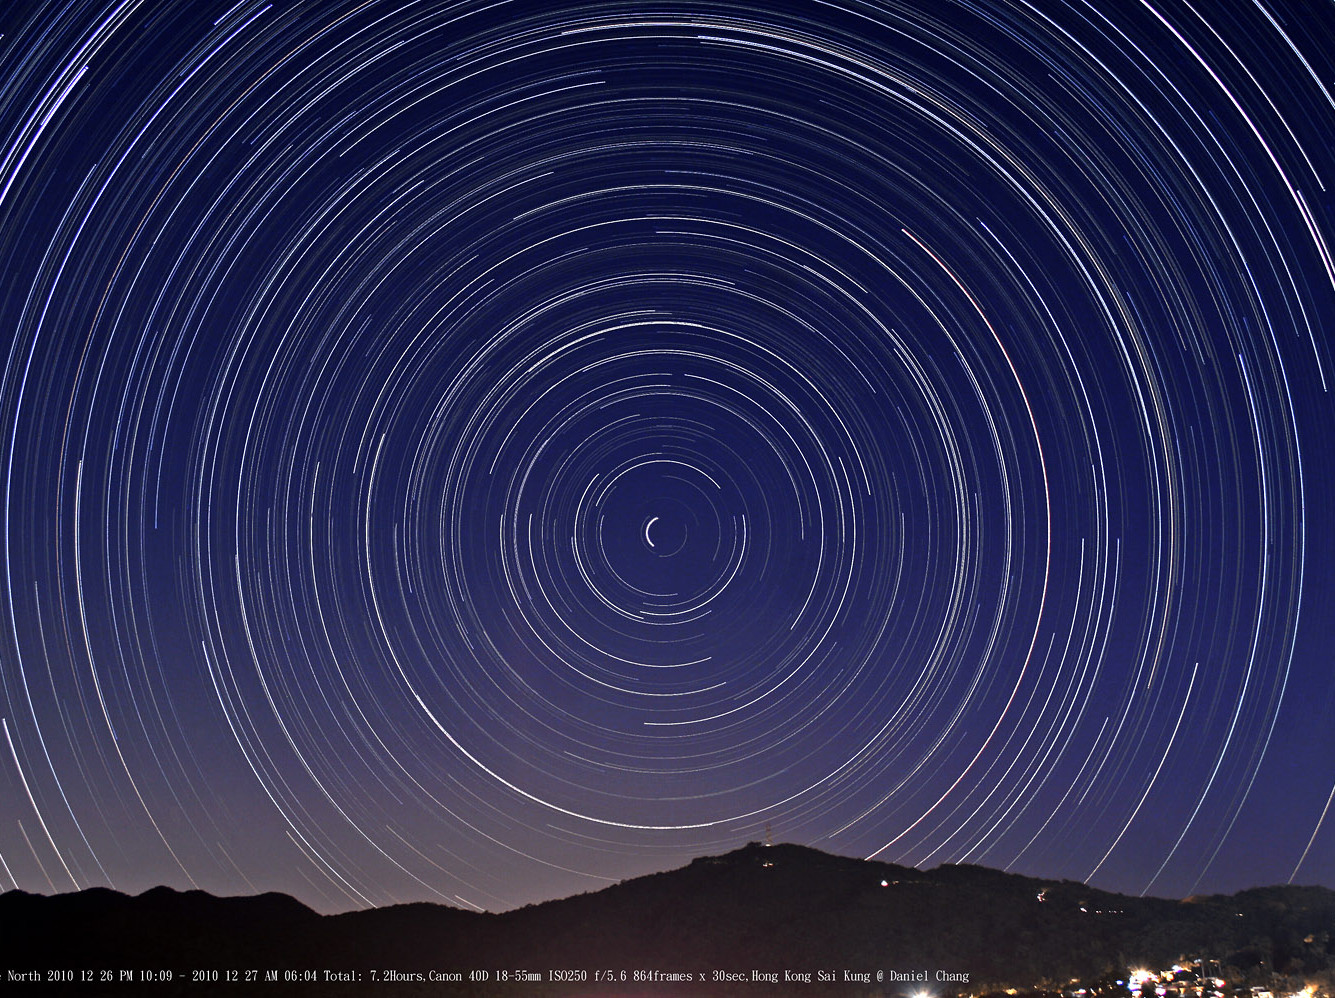 Star Trails in the North 拱極星流跡